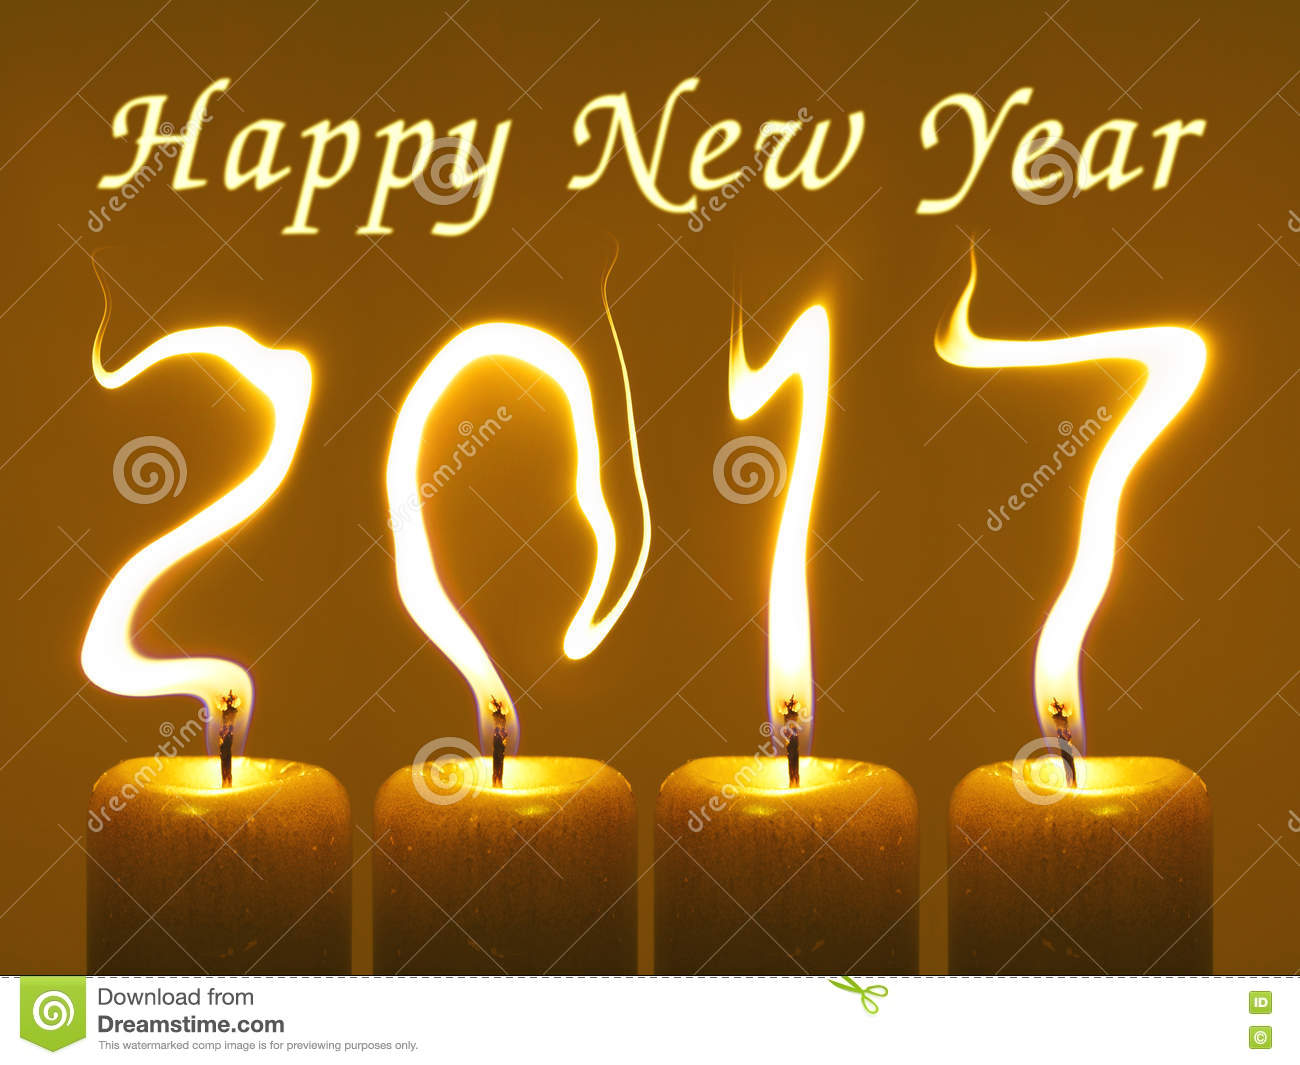 2017 happy new year greetings card stock photo image of 2017 happy new year greetings card kristyandbryce Gallery